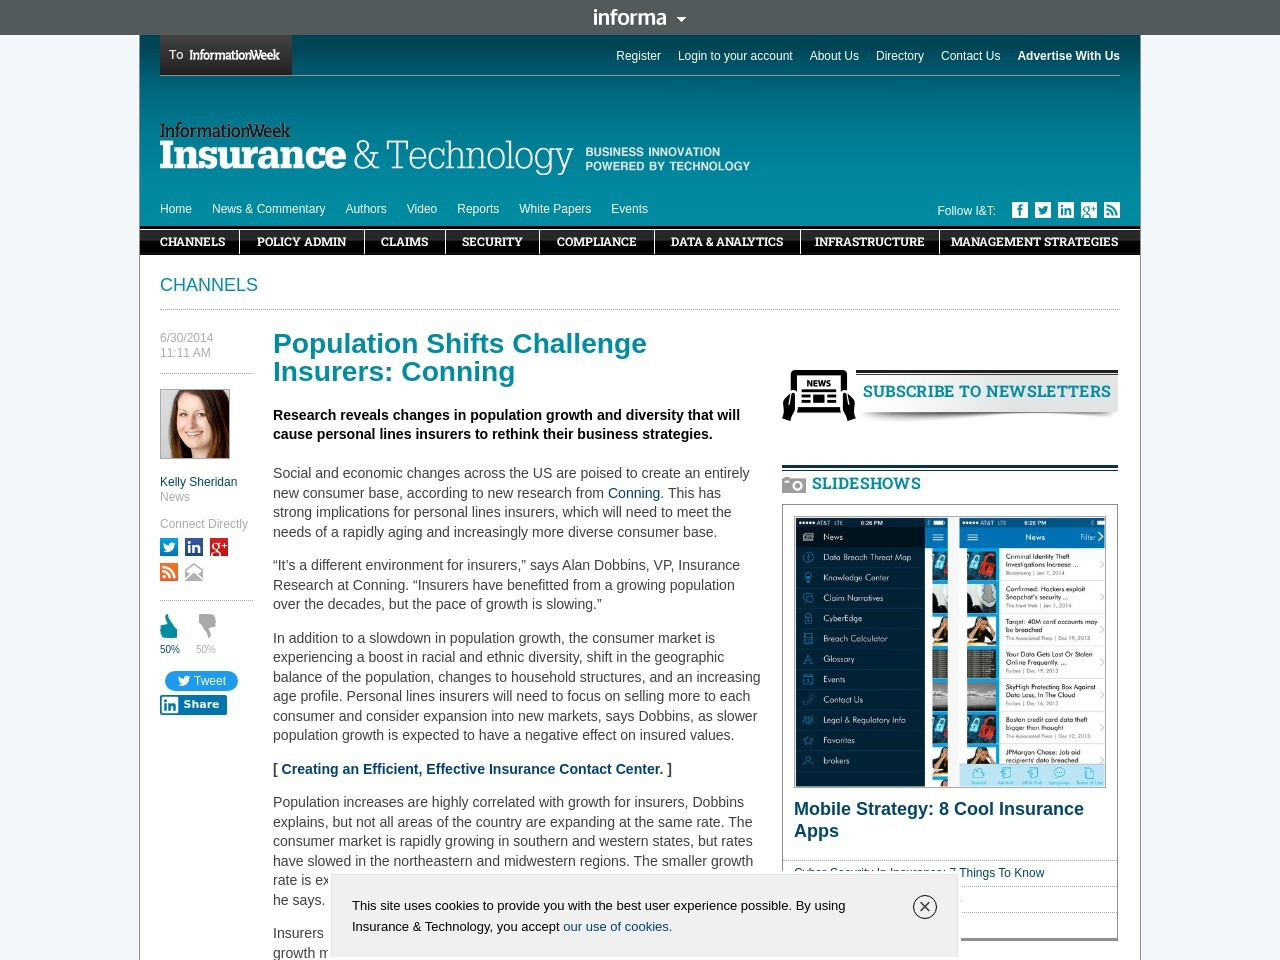 Population Shifts Challenge Insurers: Conning